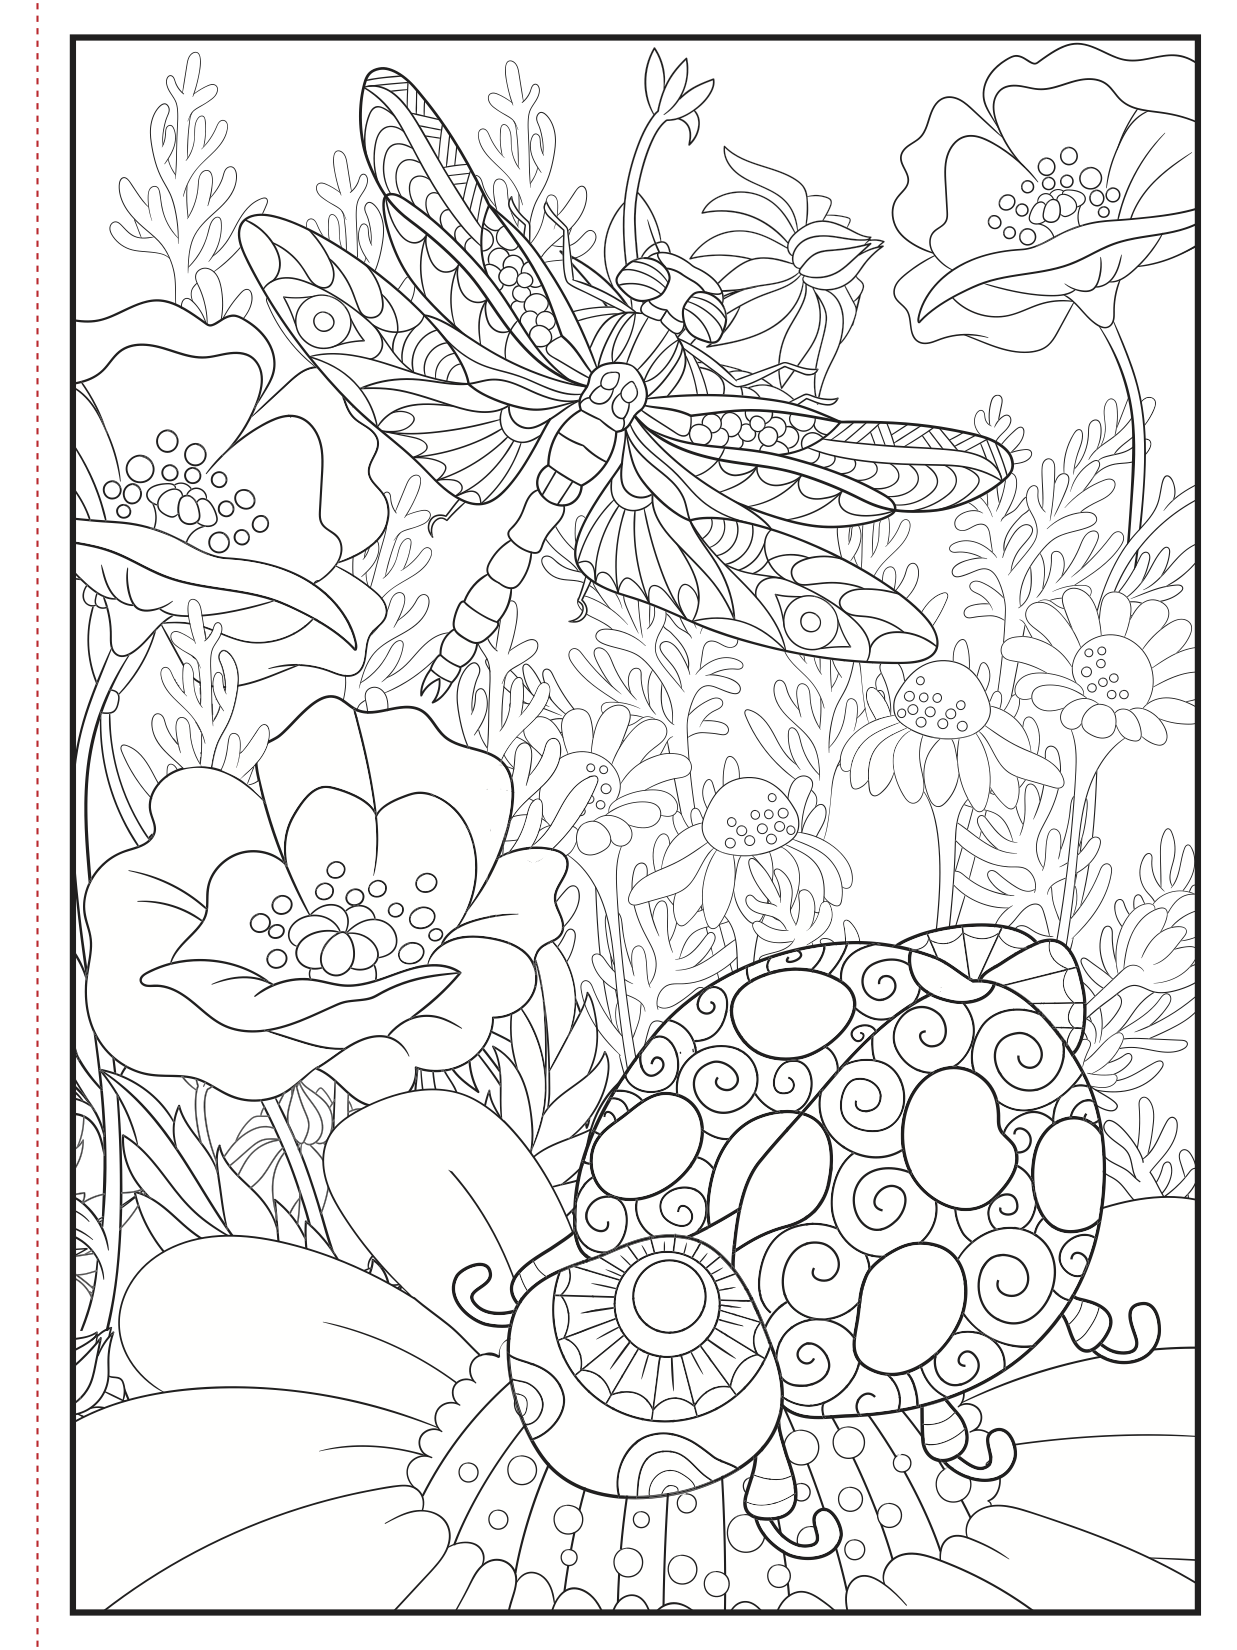 - Choose From A Variety Of Free Coloring Pages From Our Coloring